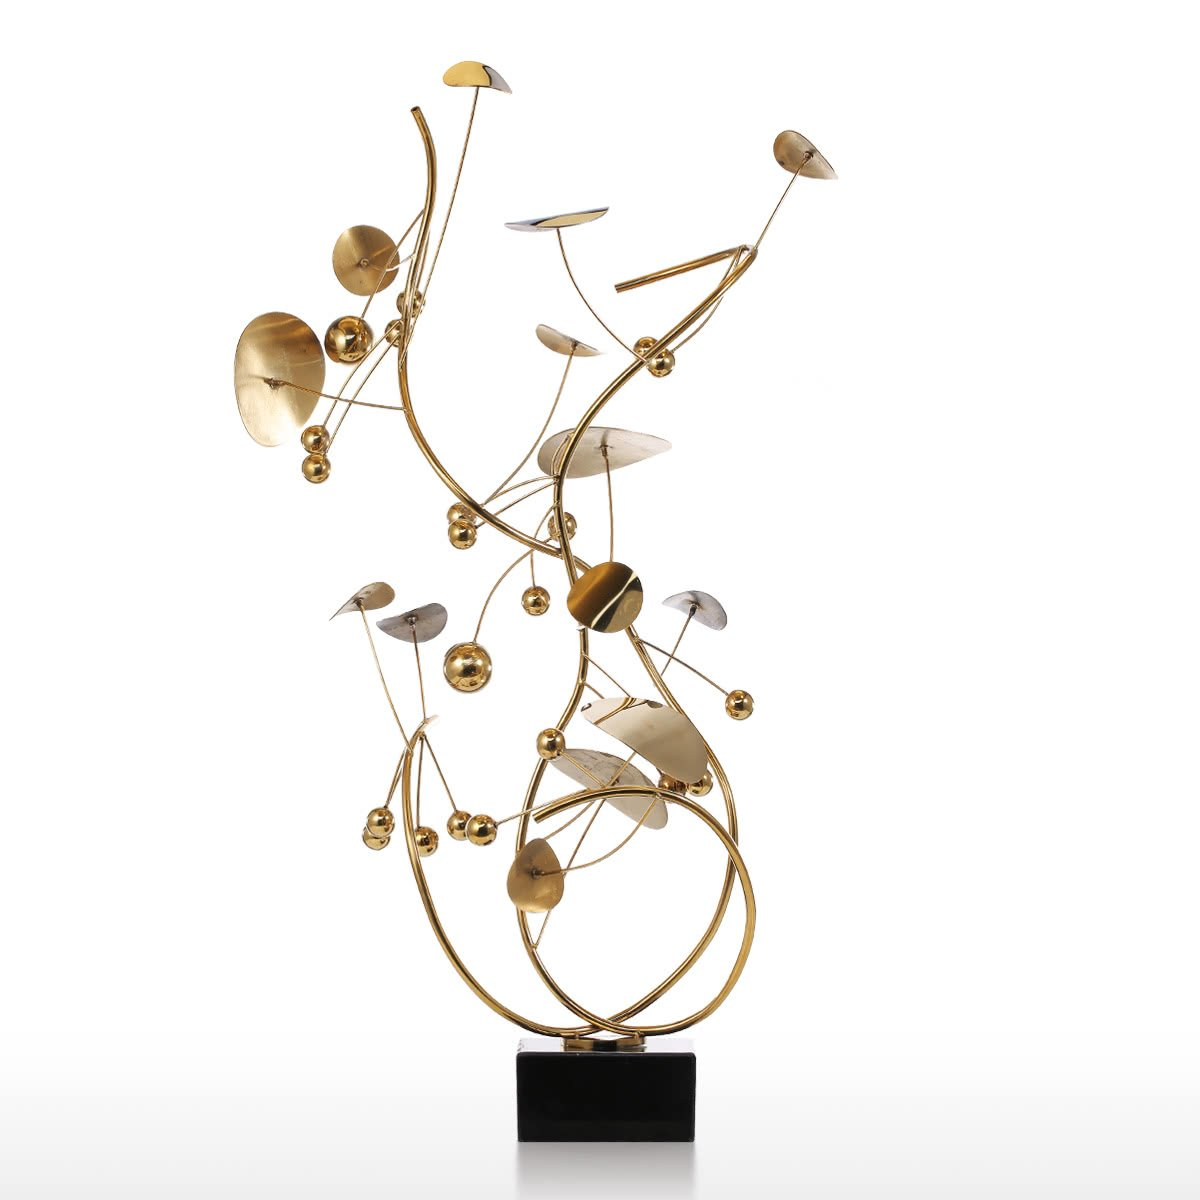 Christmas Tree Art.Metal Christmas Tree Sculpture By Small Tabletop Gold Christmas Decor